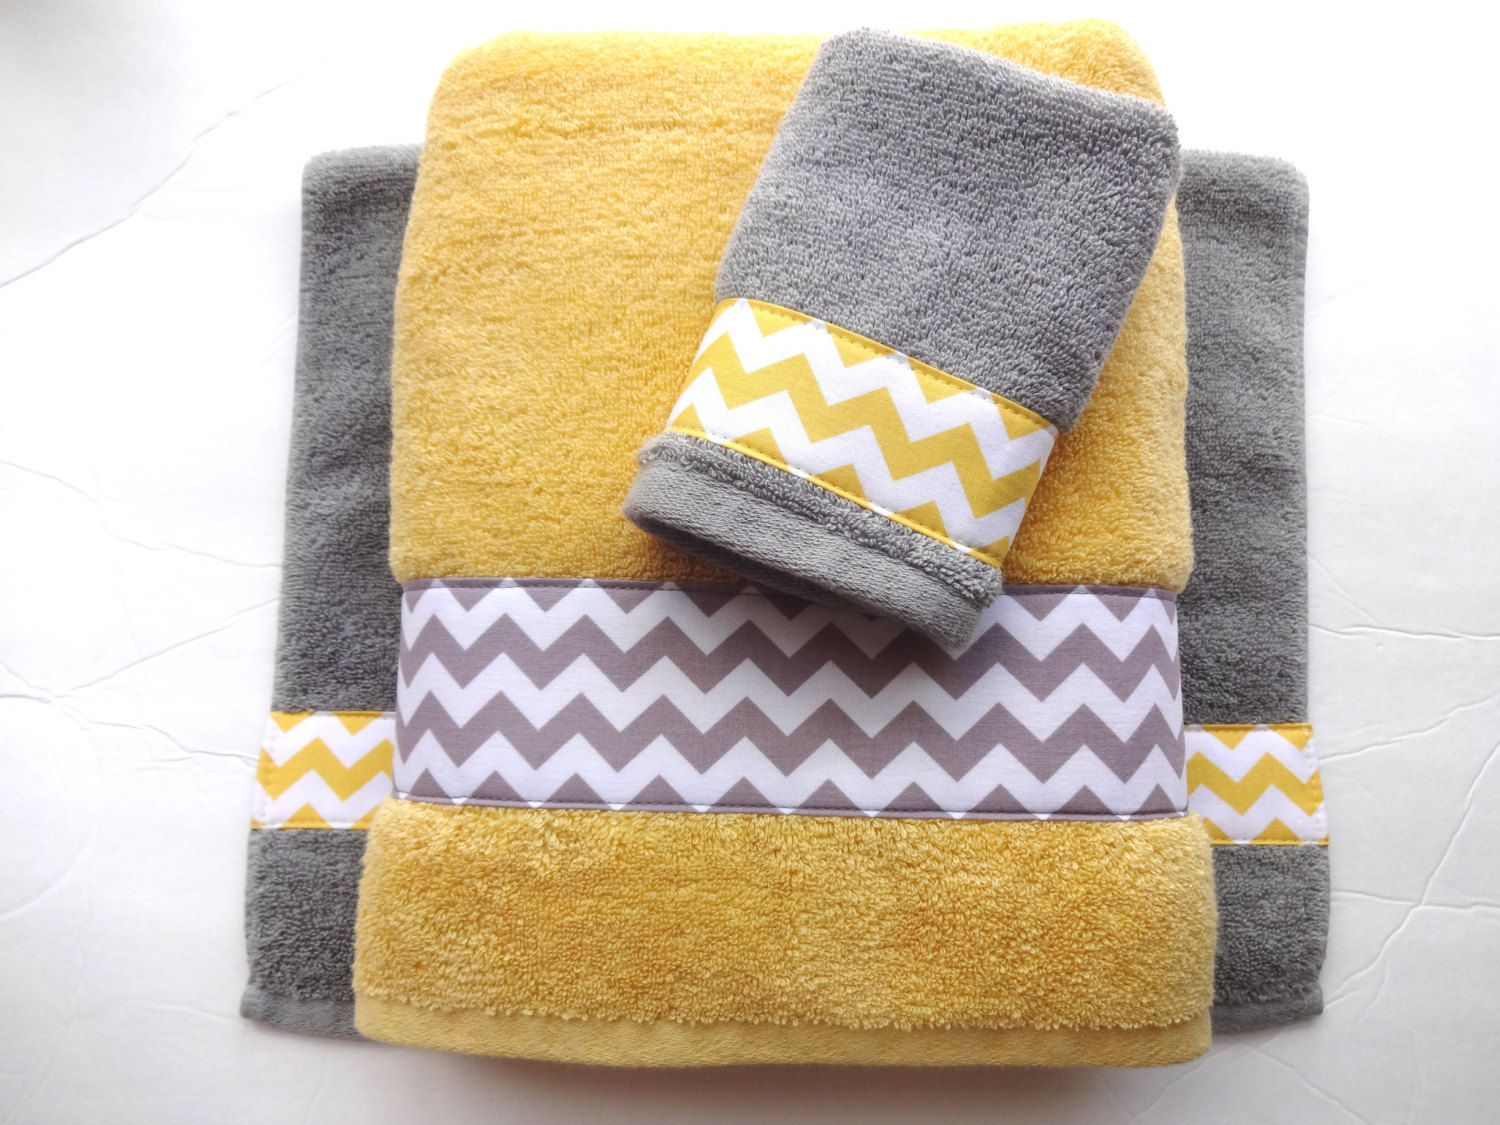 Pick Your Size Towel Yellow And Grey Towels Gray And Yellow Bathroom Towel Sets Hand Towels Yellow And Grey Bathroom Bath Decor Yellow Towels Yellow Bath Towels Yellow Bathrooms